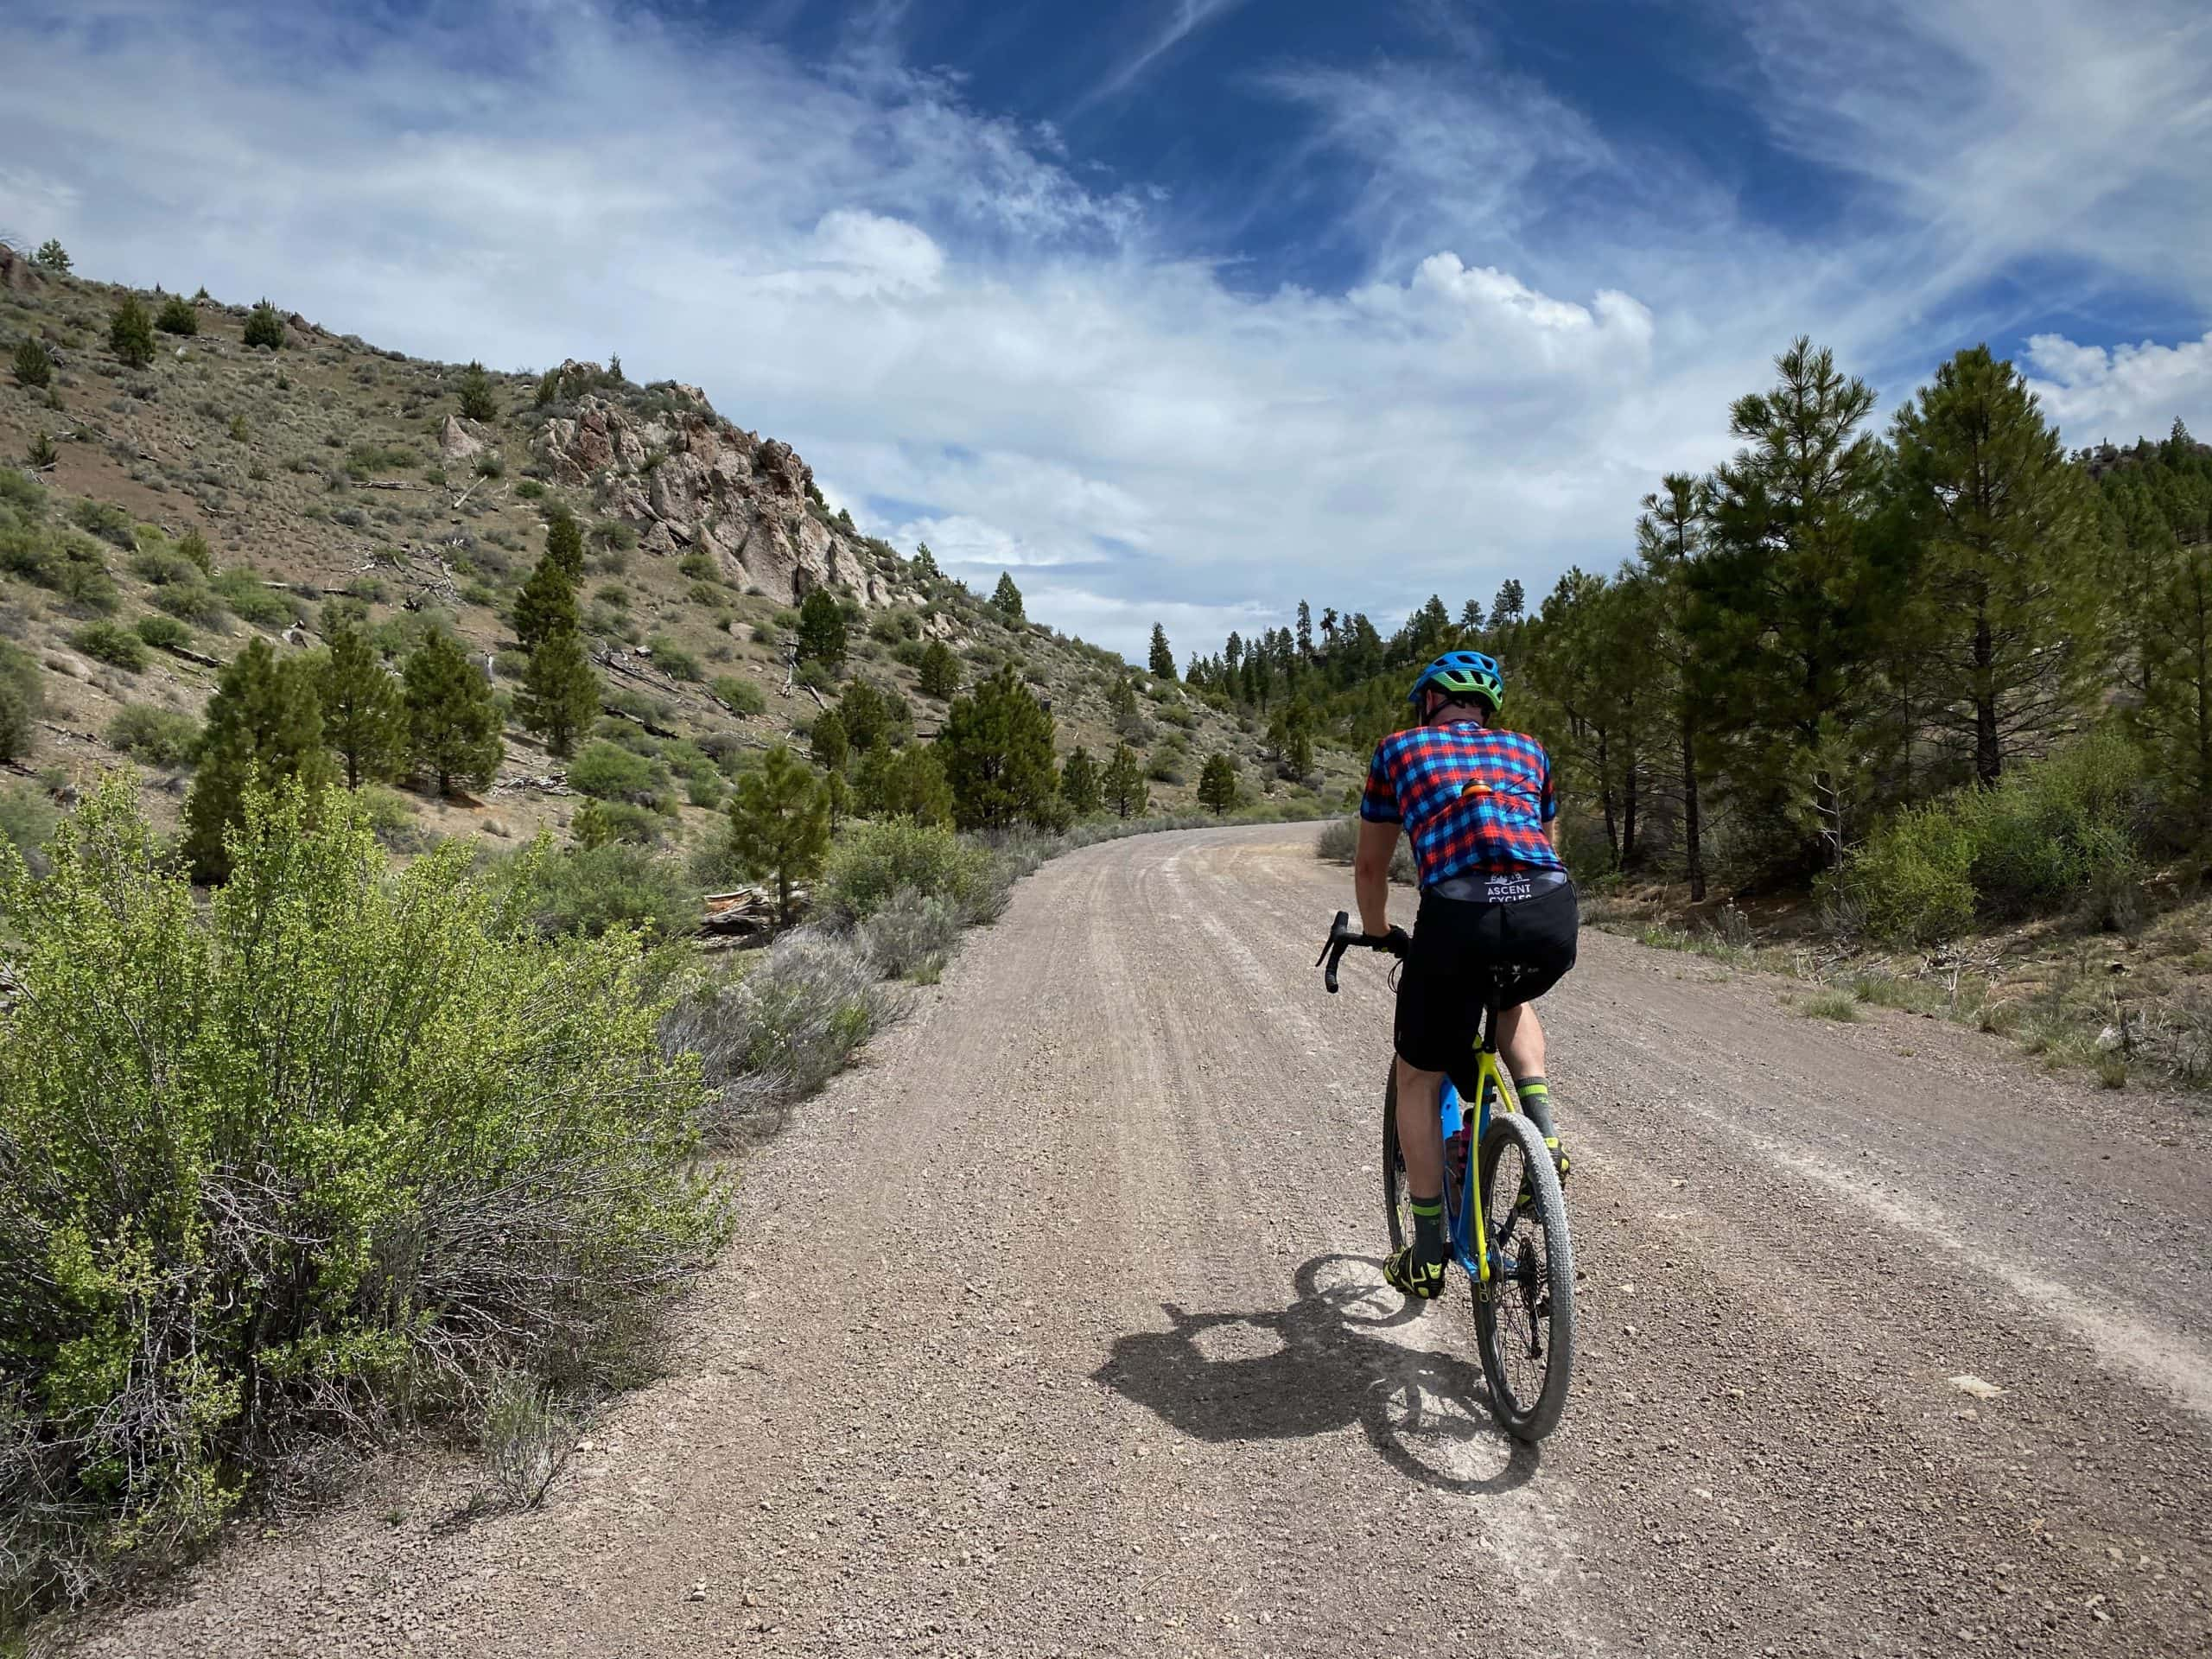 Cyclist on gravel road with limestone rock outcroppings near Burns, Oregon.